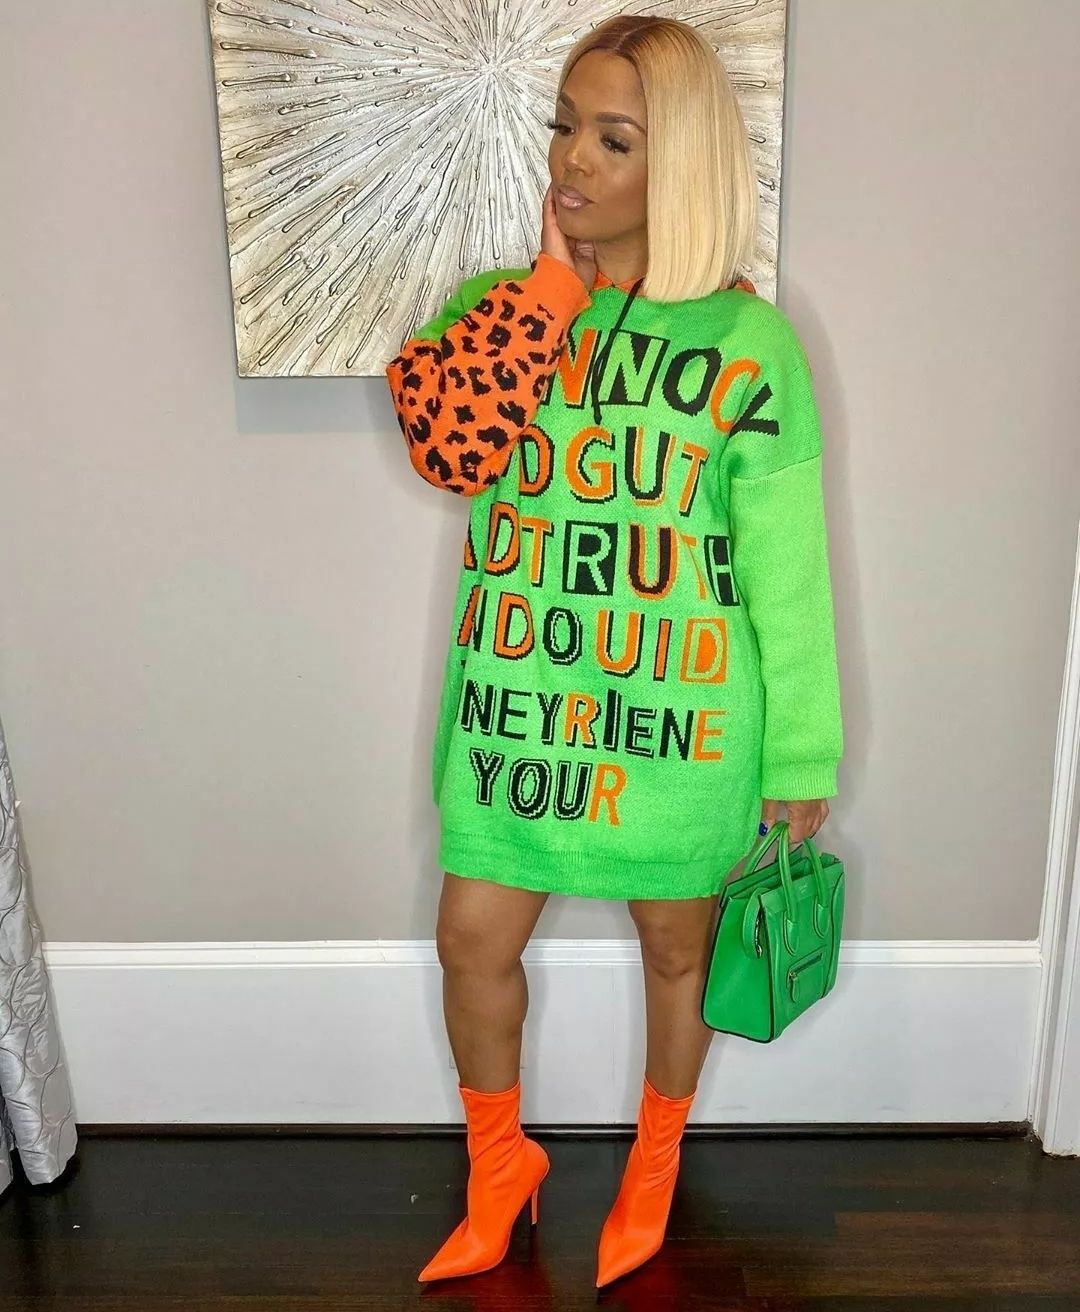 rasheeda-frost-advertises-something-unexpected-and-surprises-fans